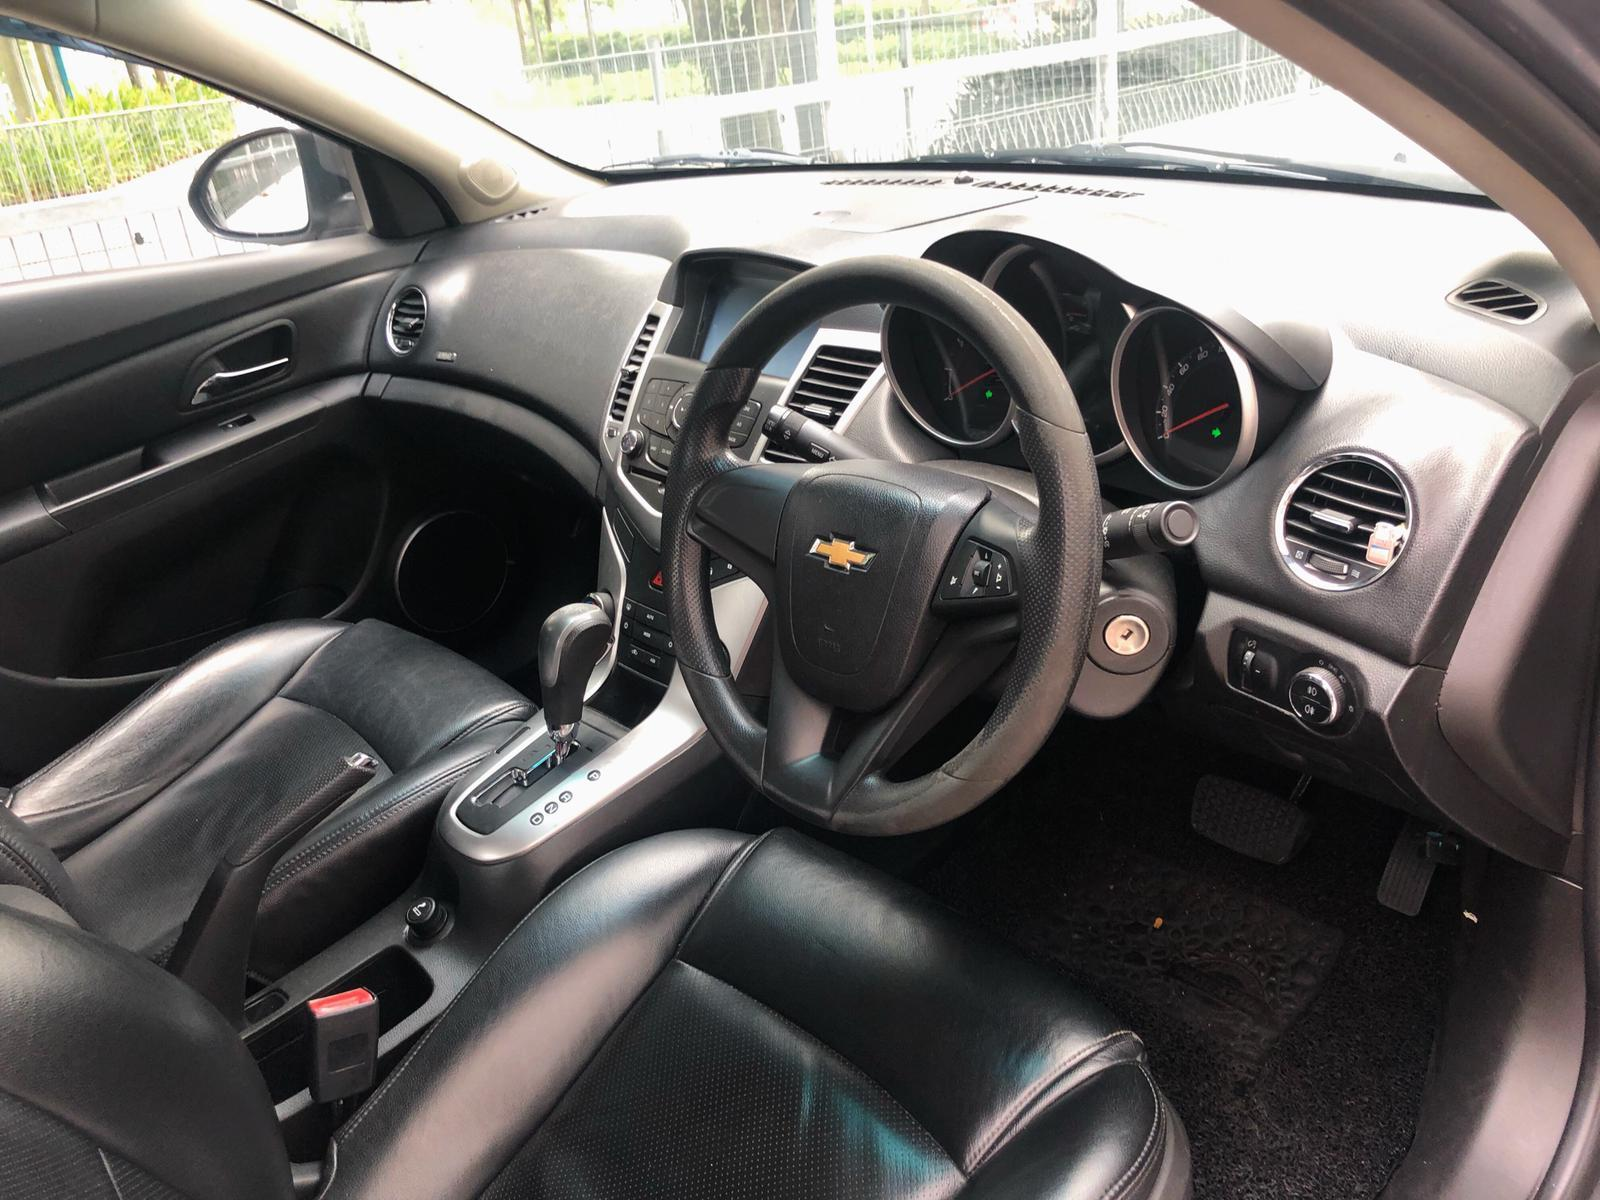 CHEVROLET CRUZE 1.6a cheapest rental toyota altis allion jazz camry hyundai avantesuitable for grab gojek n personal use.